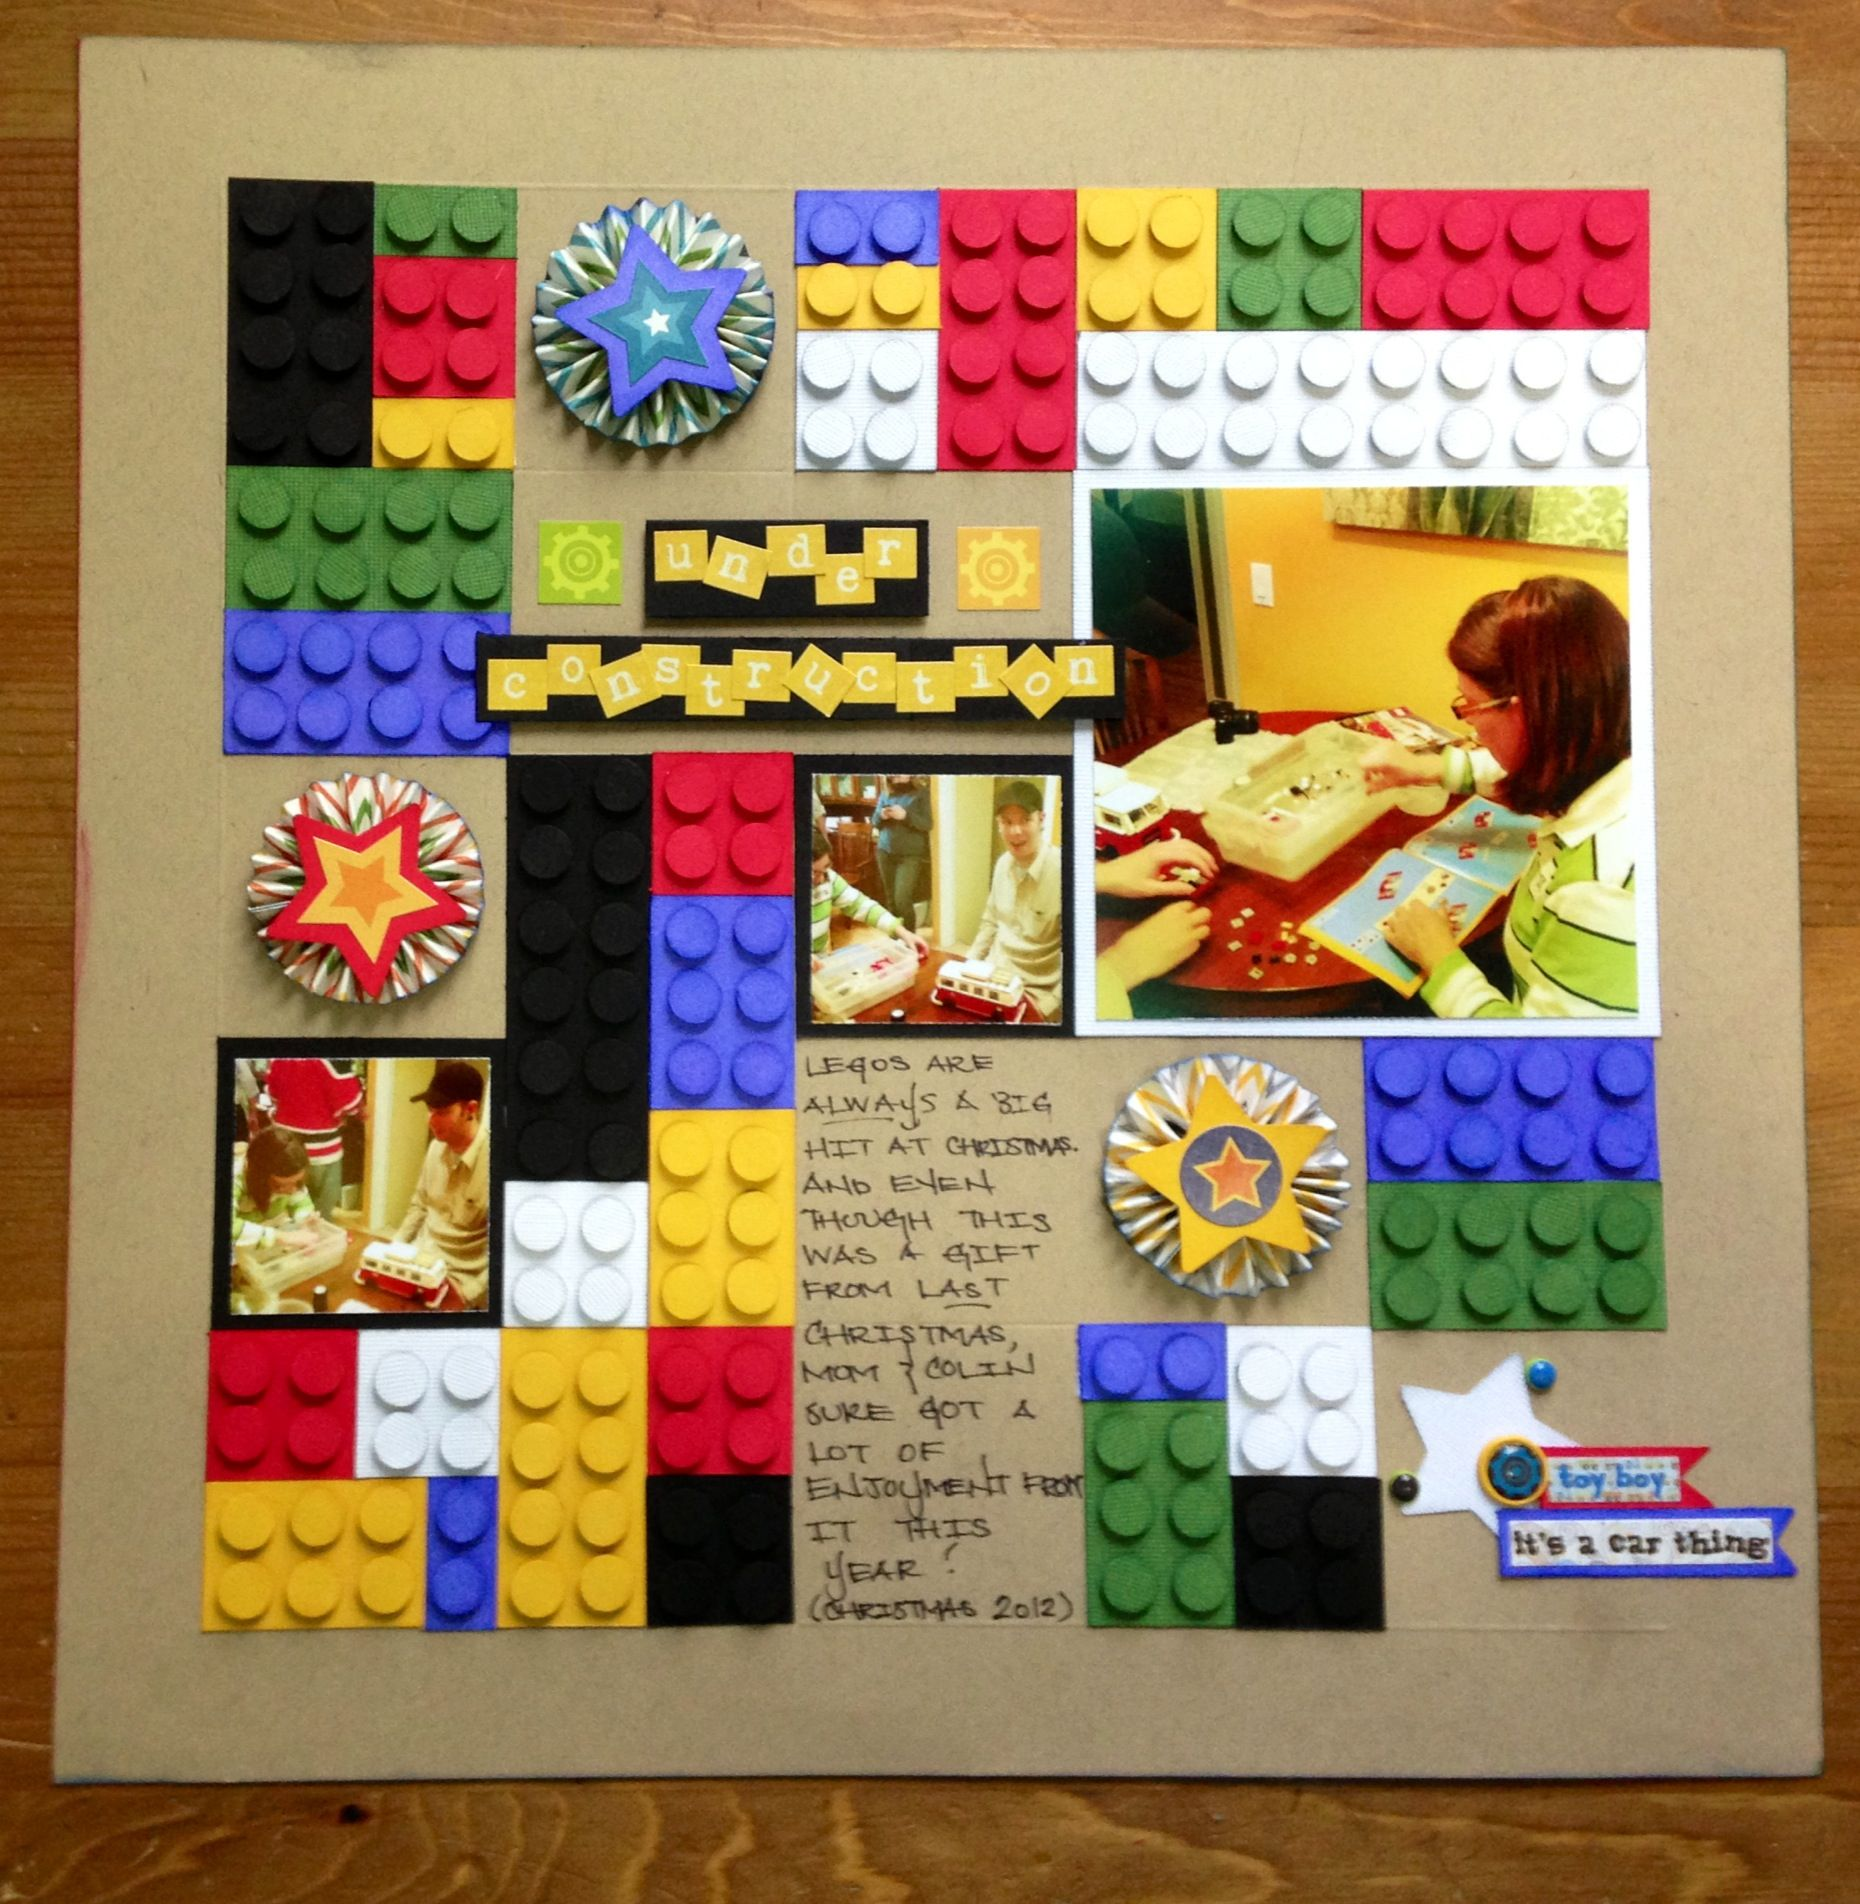 Scrapbook ideas for bff - Lego Scrapbooking Layout